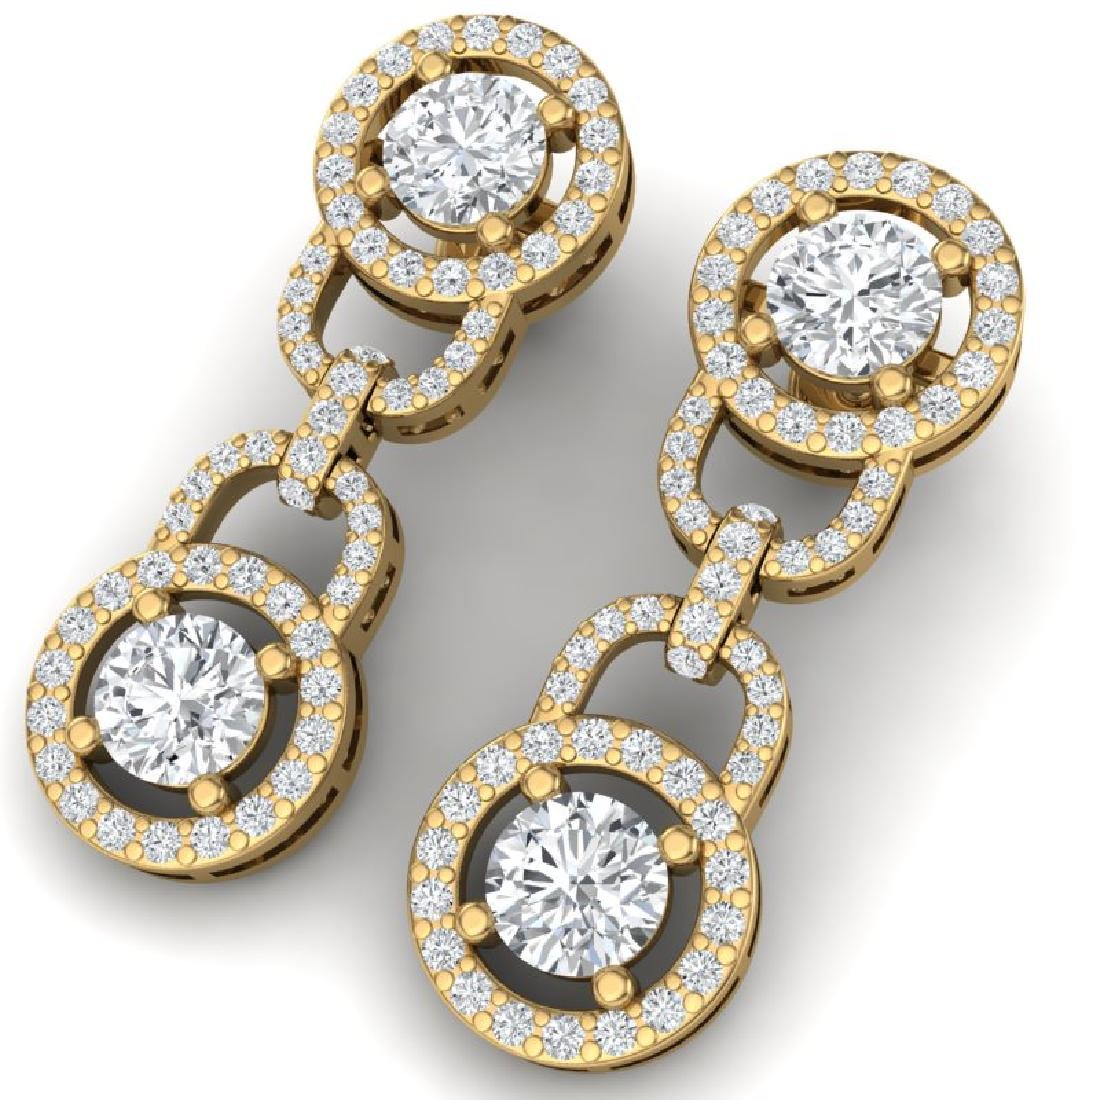 4 CTW Certified SI/I Diamond Halo Earrings 18K Yellow